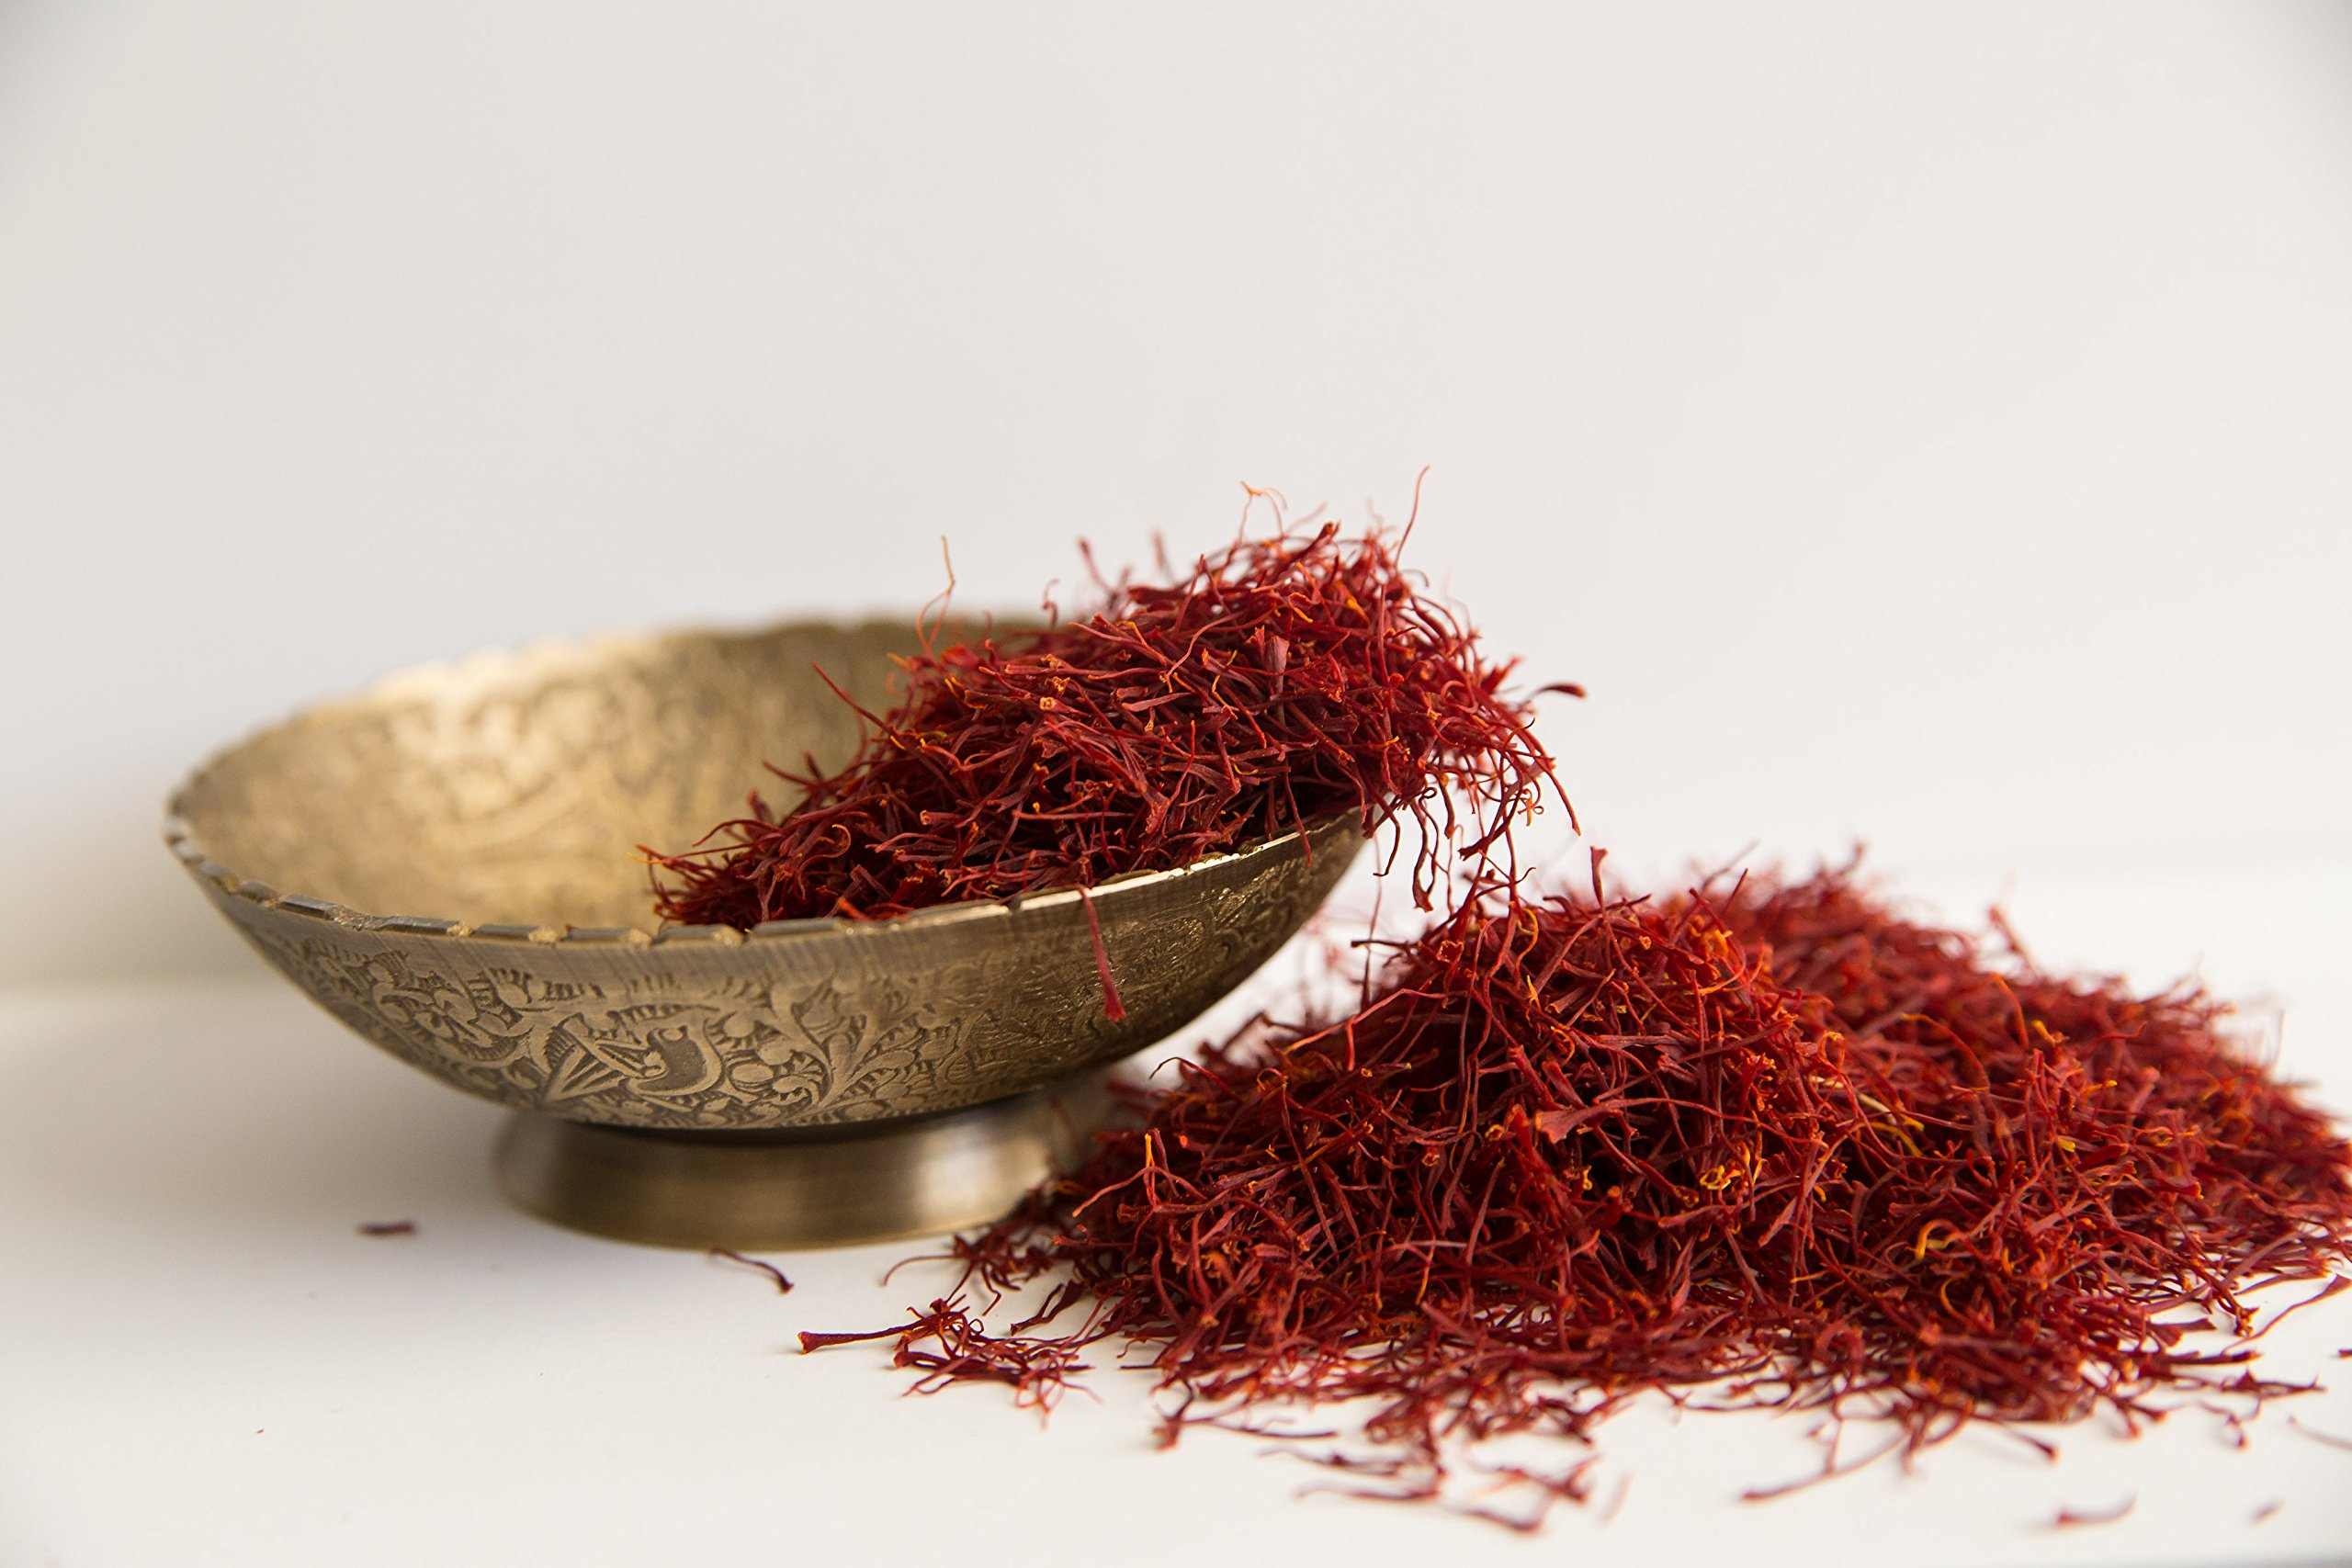 Persian Saffron Threads by Slofoodgroup Premium Quality Saffron Threads, All Red Saffron Filaments (various sizes) Grade I Saffron (1 Ounce Saffron) by SLO FOOD GROUP (Image #7)